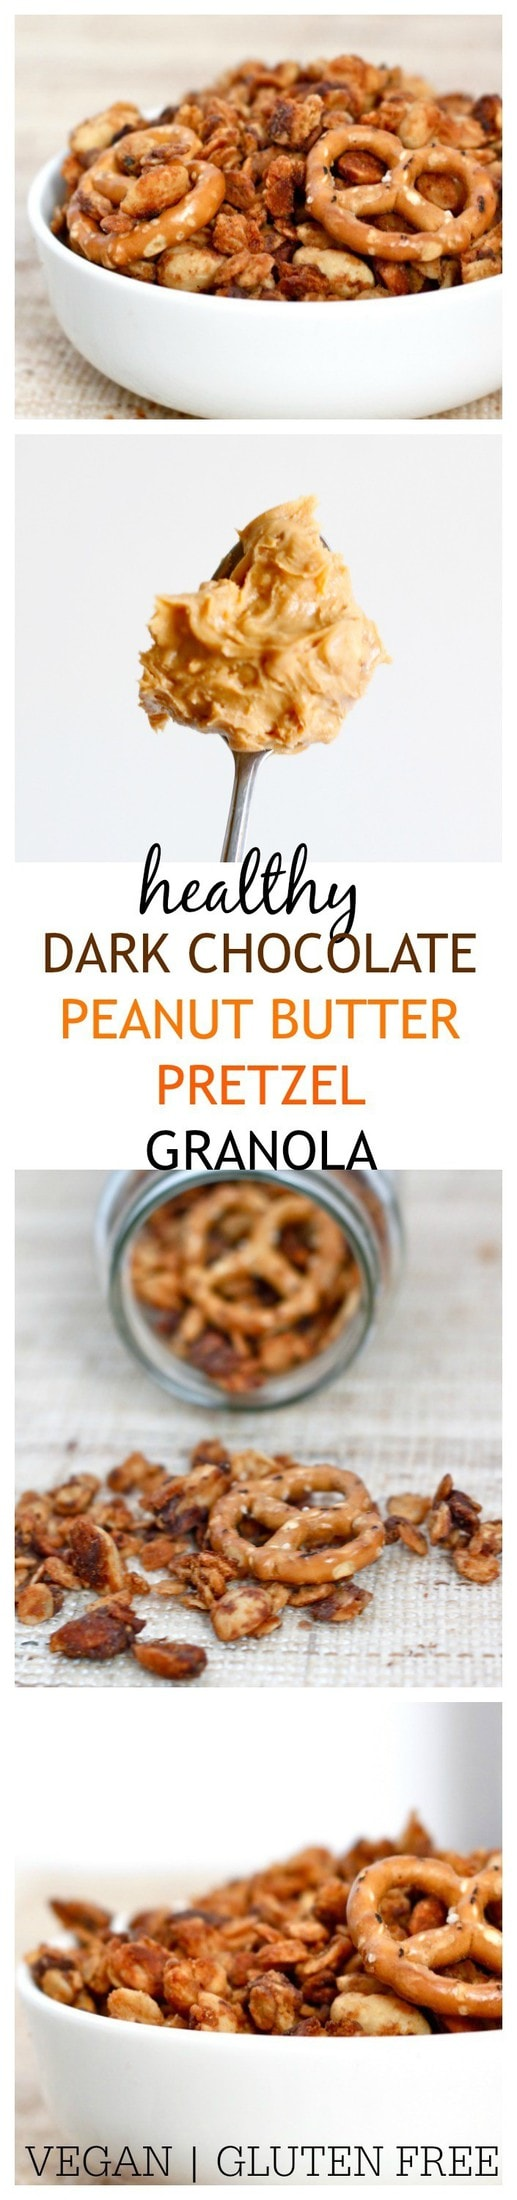 Healthy Dark Chocolate Peanut Butter Pretzel Granola- Dark chocolate, peanut butter and pretzels get married in this delicious and healthy granola! Perfect for snacking or breakfast, it's vegan, dairy free, gluten free and made with no butter, oil or unnecessary fats!  @thebigmansworld - thebigmansworld.com